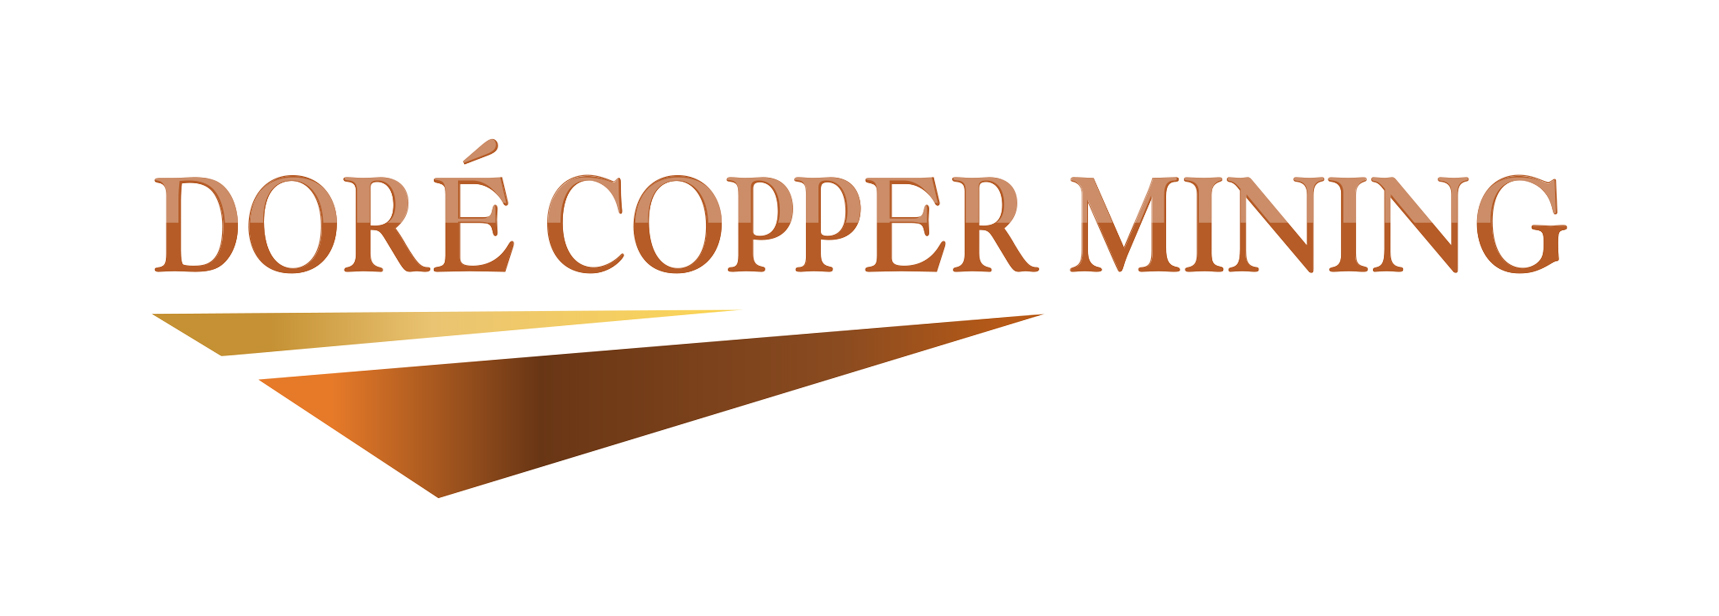 Doré Copper to Commence Drilling on High-Grade-Gold Joe Mann Property in Québec